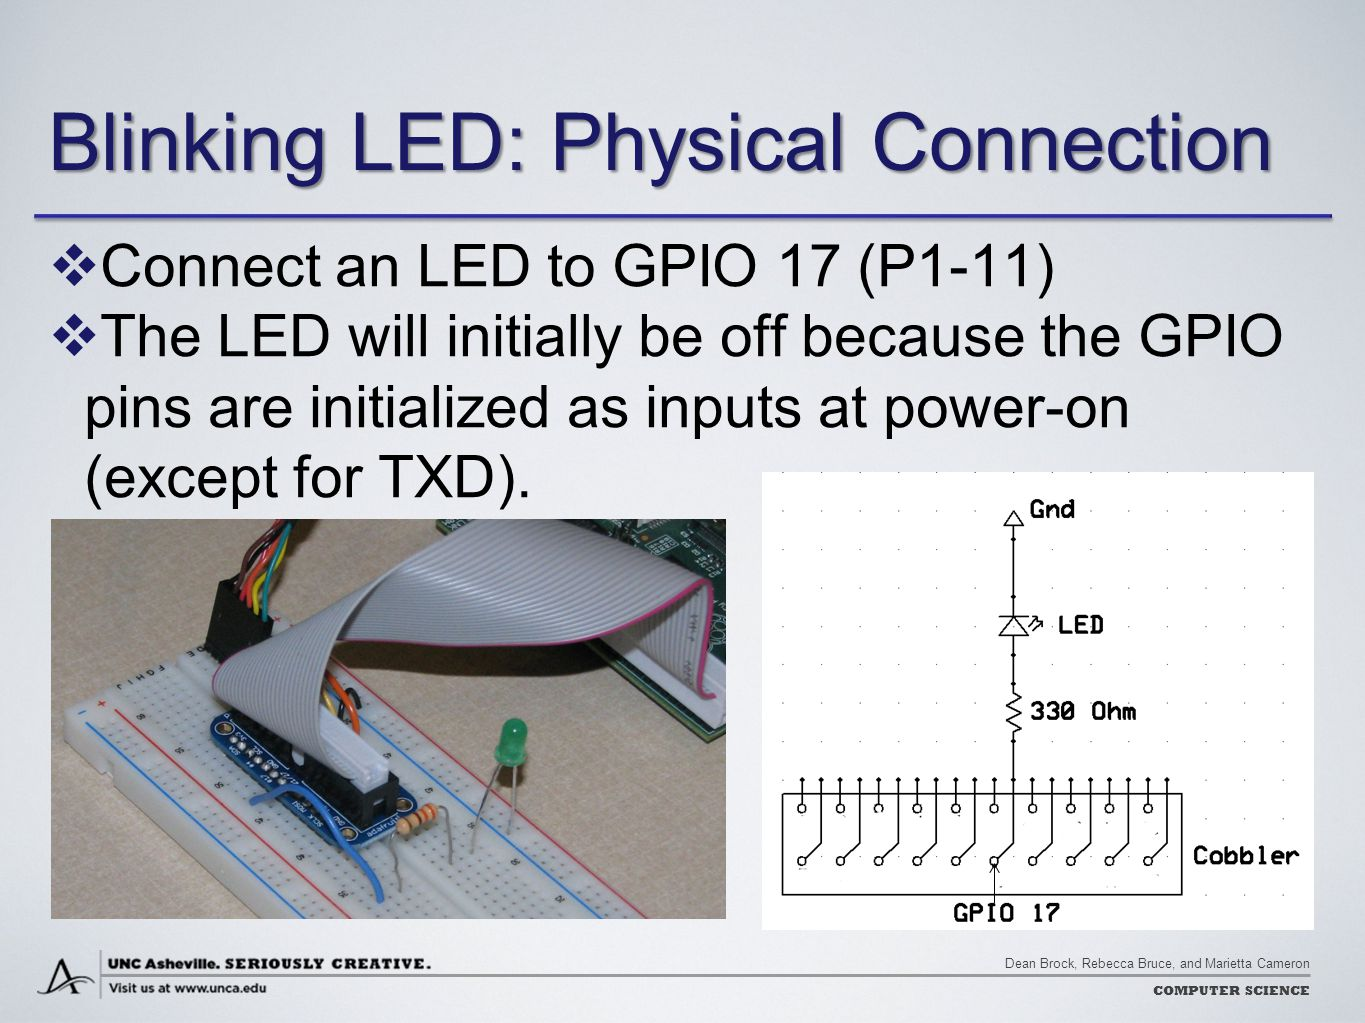 Dean Brock, Rebecca Bruce, and Marietta Cameron COMPUTER SCIENCE Blinking LED: Physical Connection  Connect an LED to GPIO 17 (P1-11)  The LED will initially be off because the GPIO pins are initialized as inputs at power-on (except for TXD).